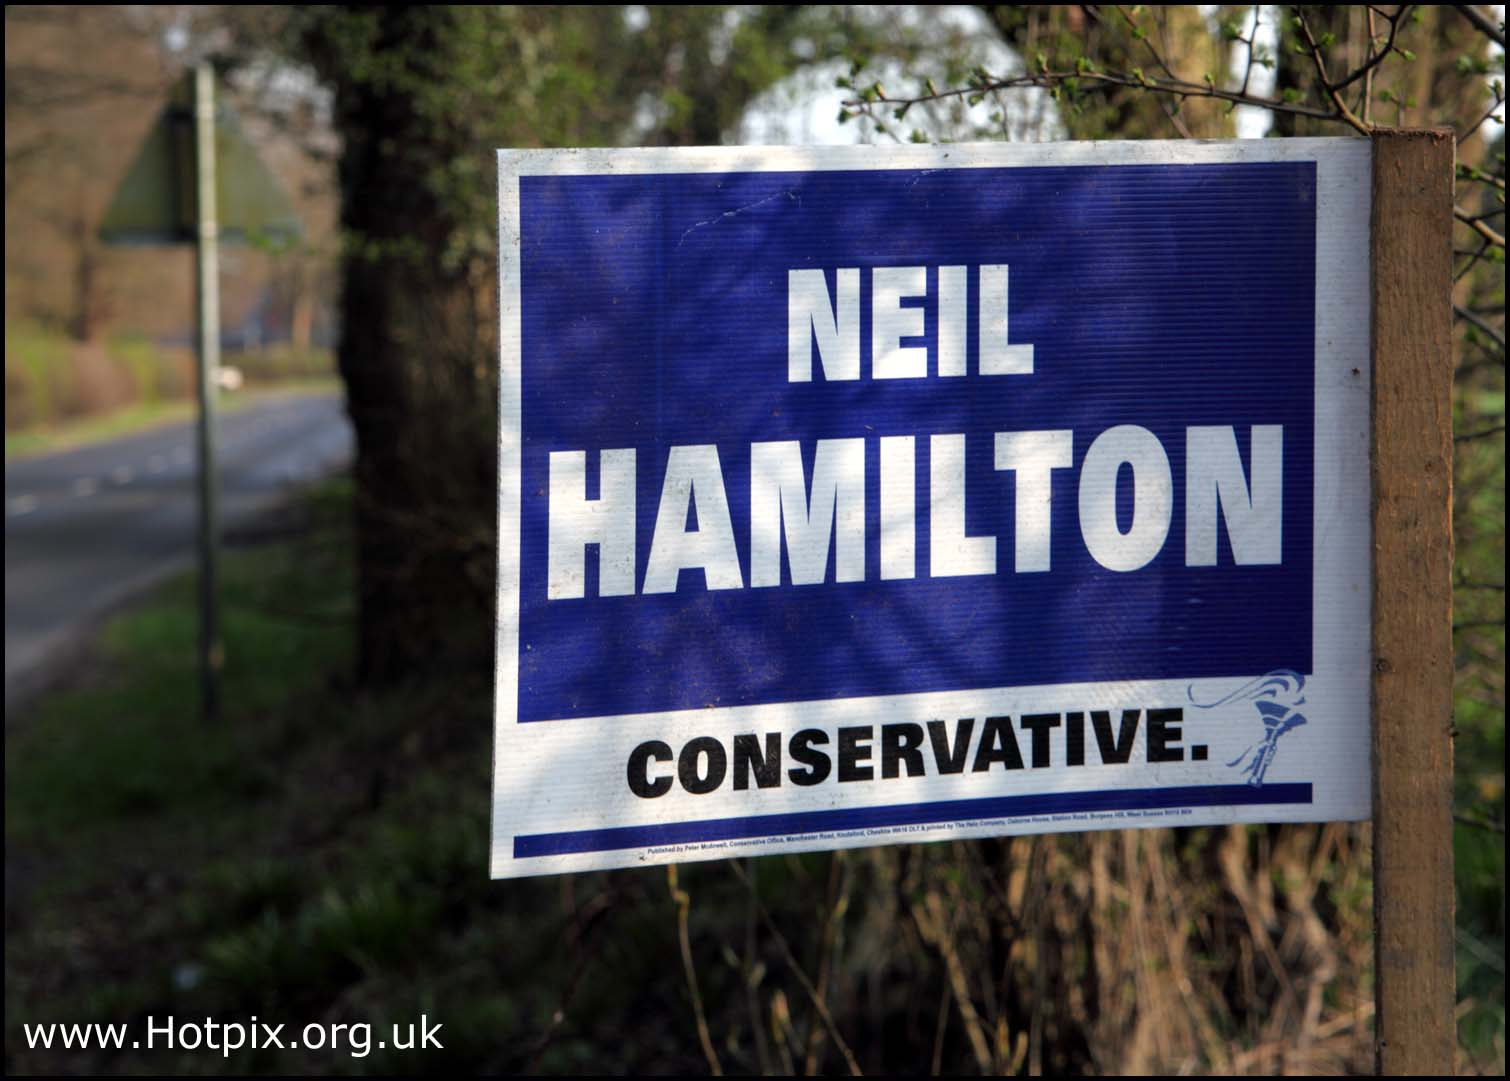 neil,hamilton,tatton,knutsford,tory,candidate,conservative,sign,general,election,2010,may,6th,true,blue,majority,cheshire,george,osbourne,electorial,parliament,UK,westminster,government,britain,british,politition,politicion,politic,politics,Labour,Liberal,Democrats,Green,Party,libdems,lib,dems,hotpics,hotpic,hotpick,hotpicks,hot,pics,pix,picks,highway,road,old,stuff,politician,hotpix!